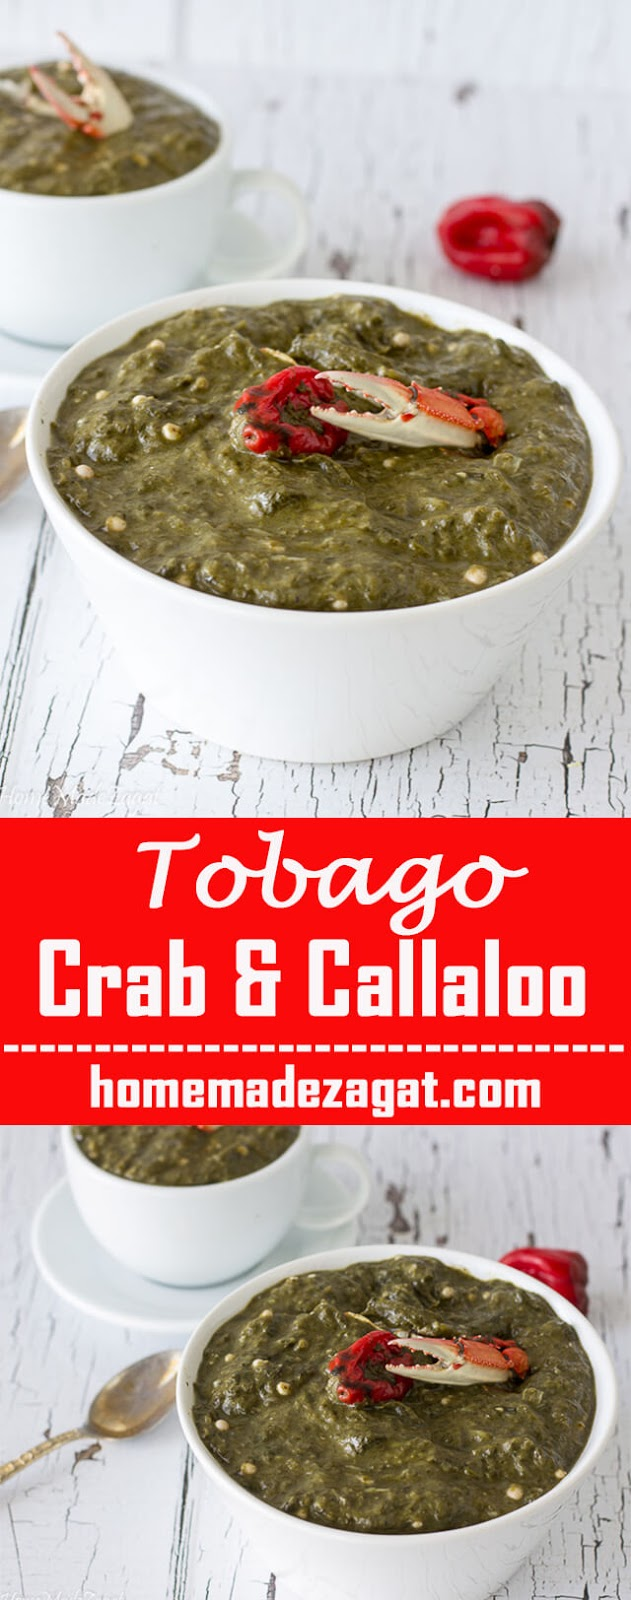 Delicious callaloo recipe with crab